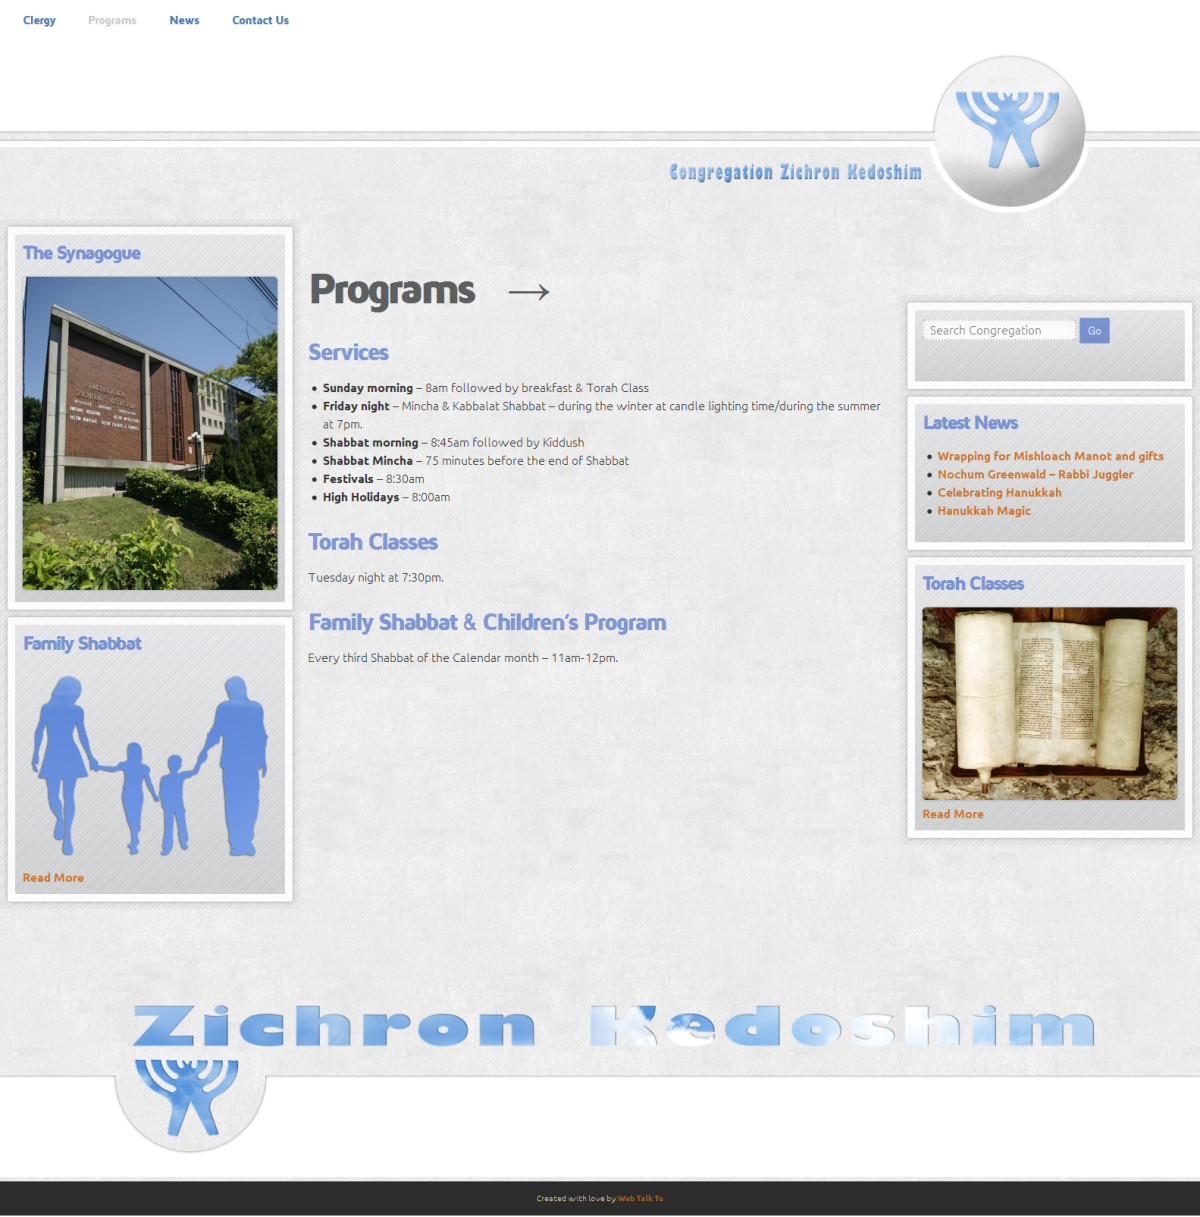 2 Zichron Kedoshim website version 2.1